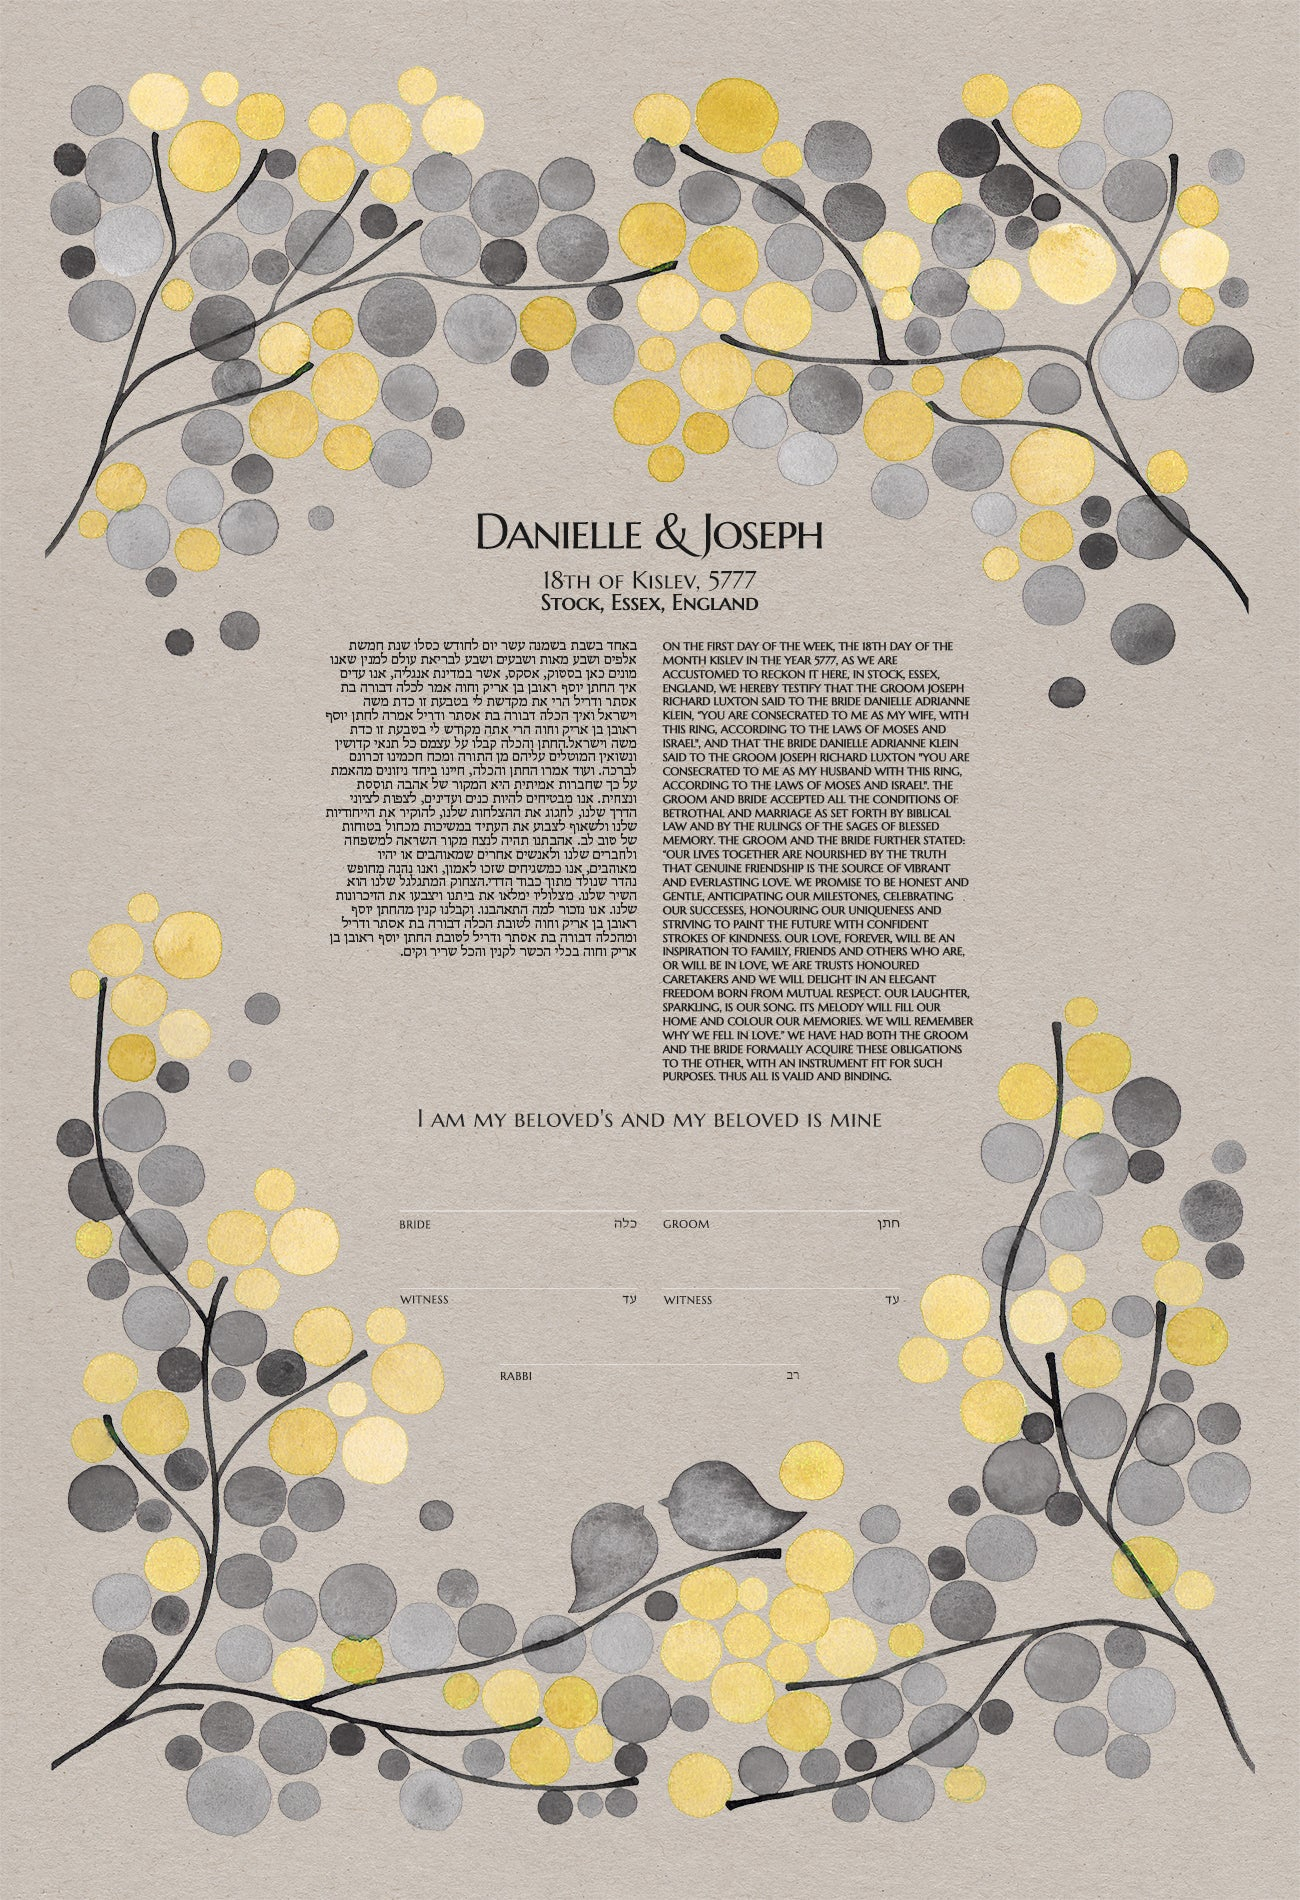 MODERN KETUBAH FLORAL BRANCHES - Review by Danielle Klein